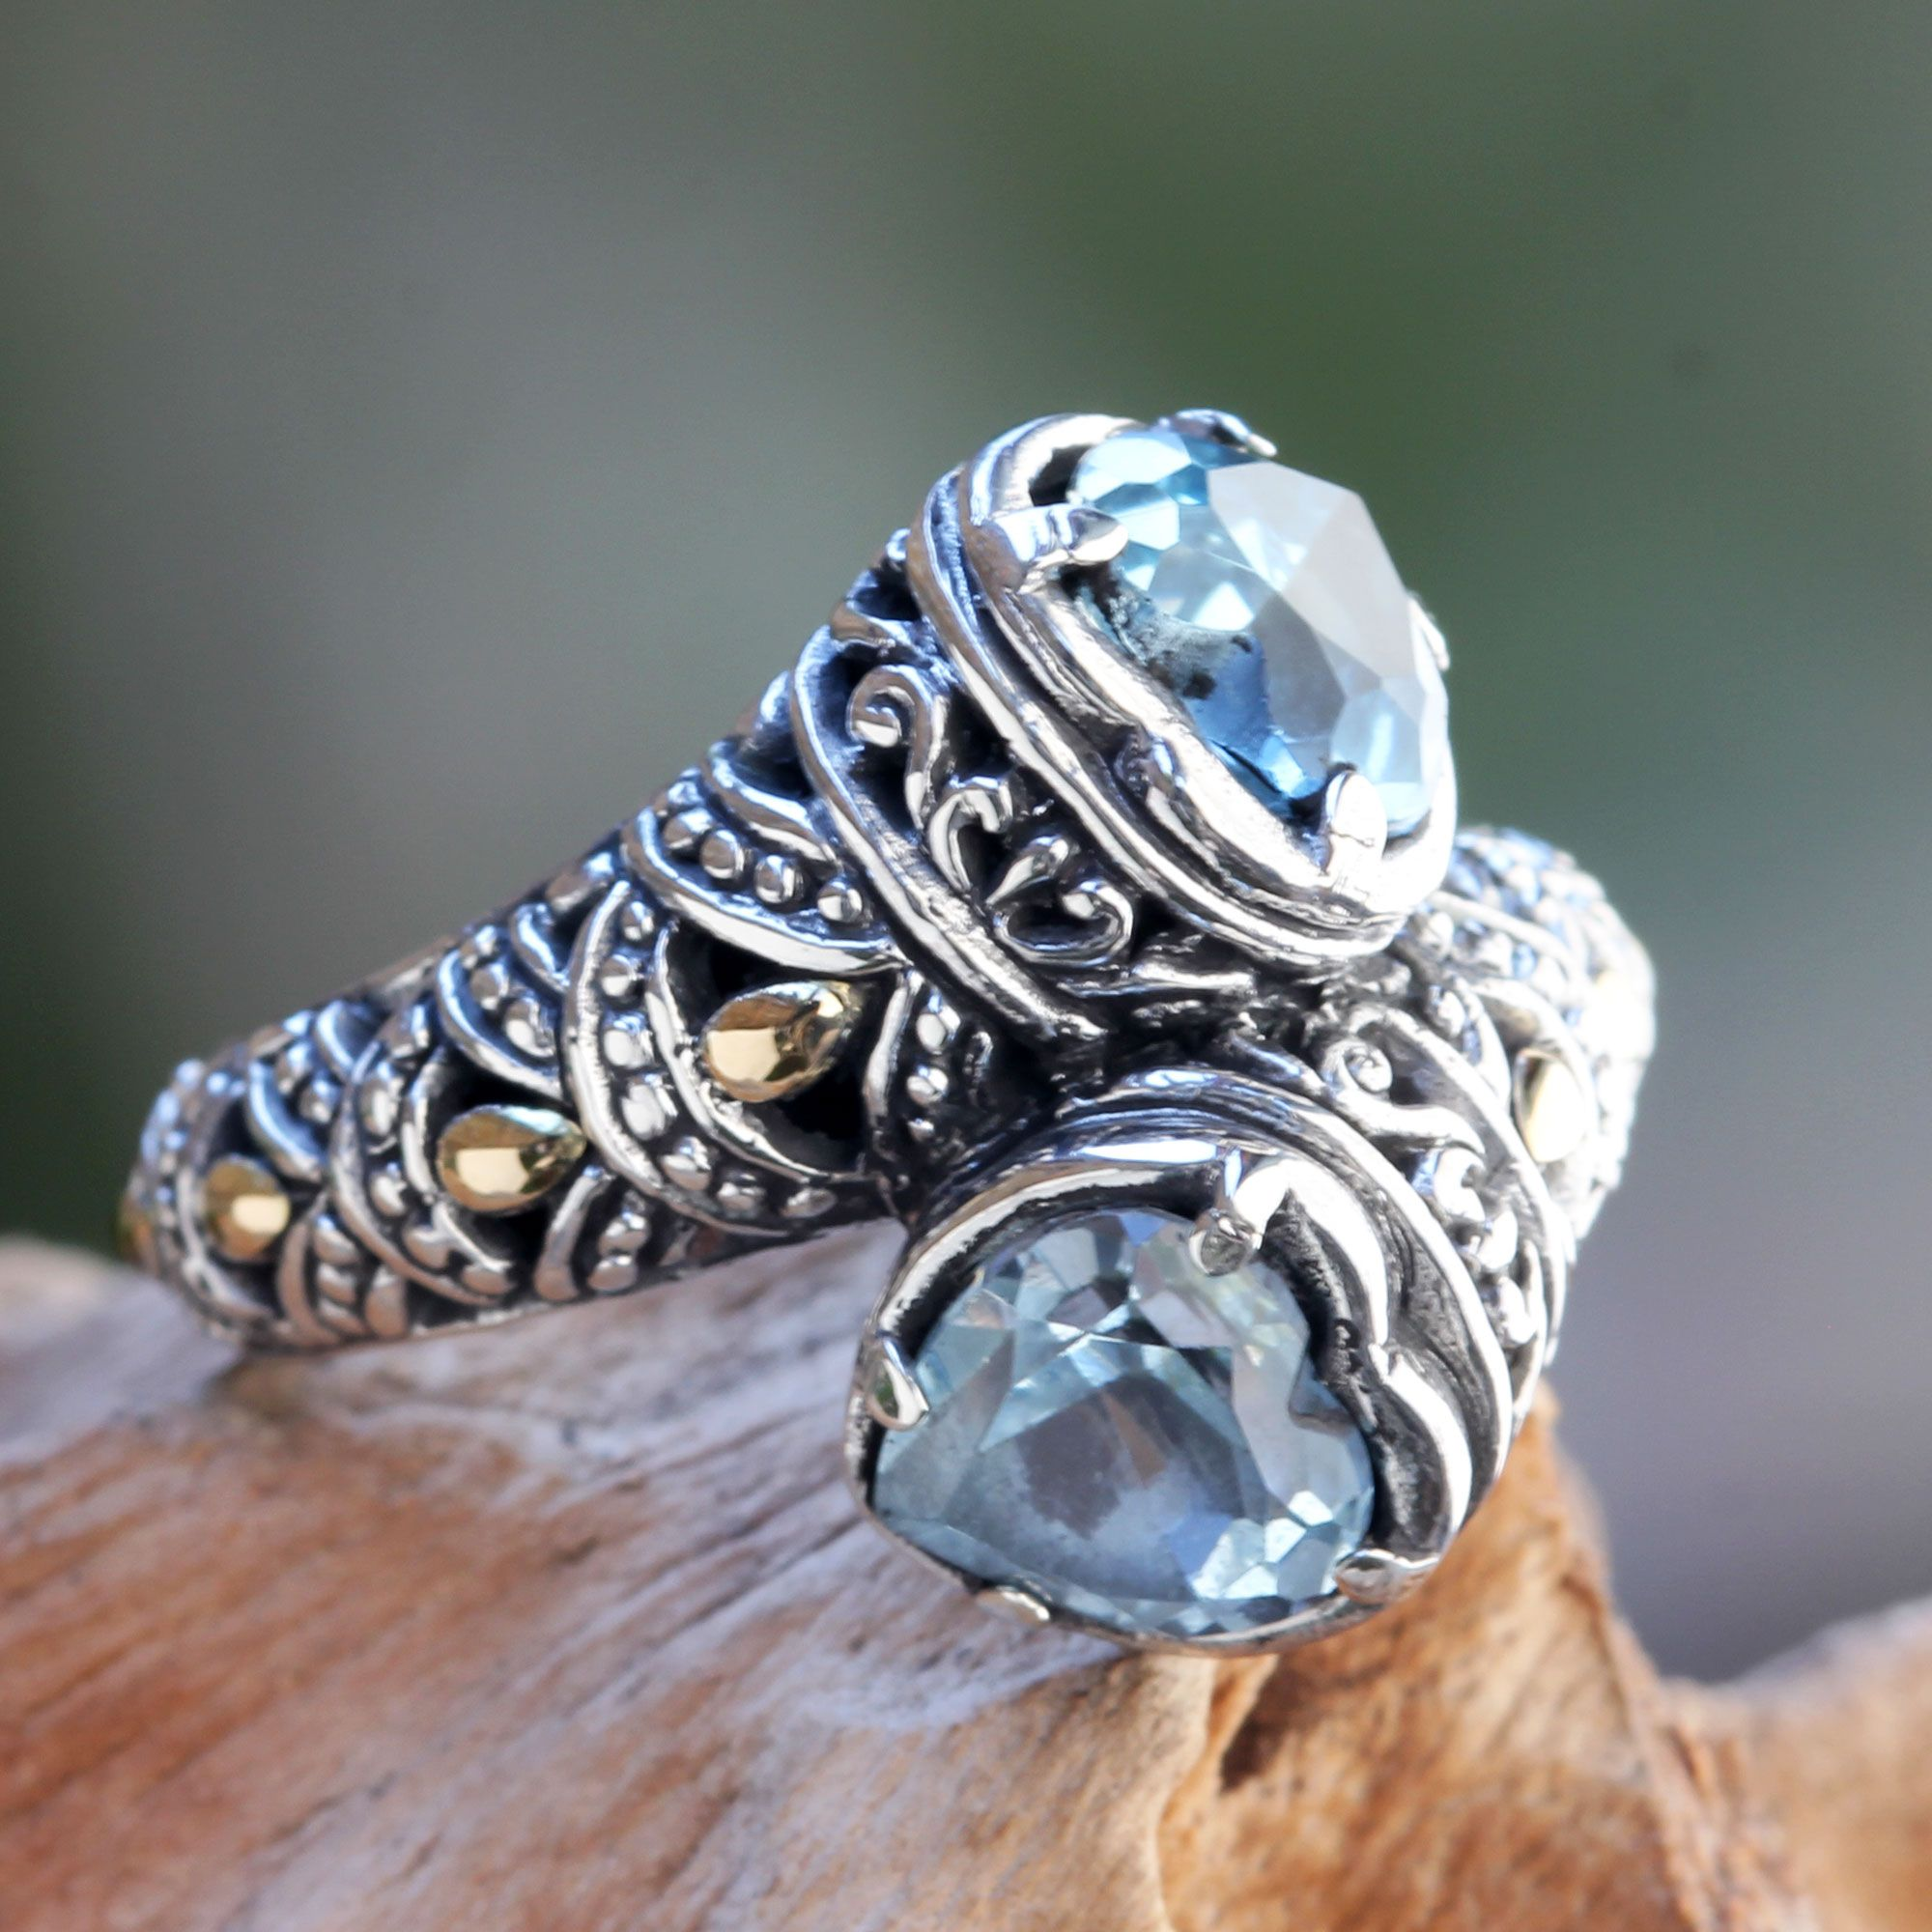 Blue Topaz On Sterling Silver Ring With Gold Plated